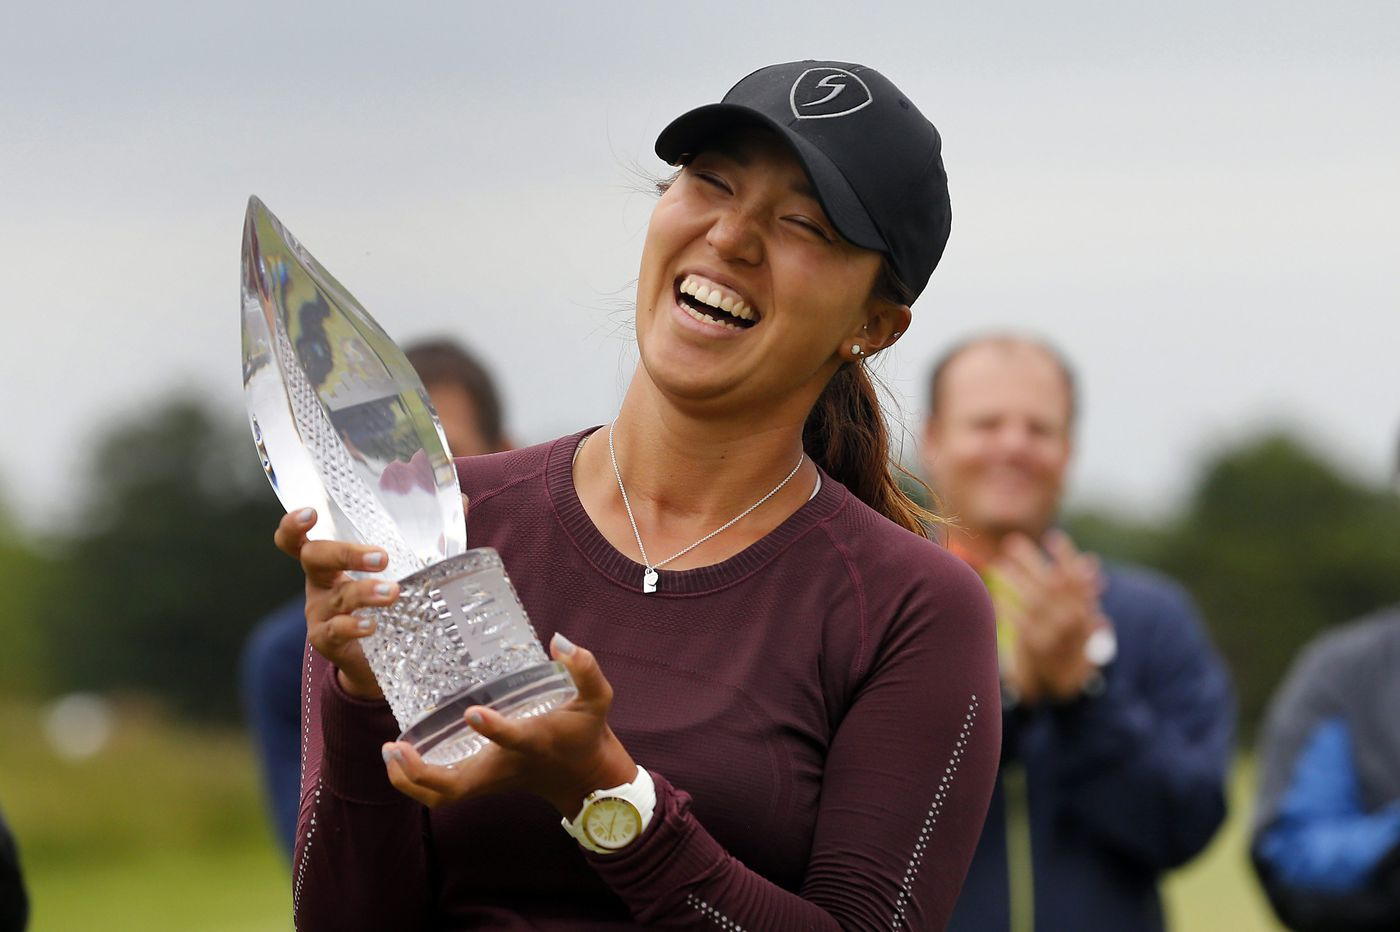 Annie Park breaks through for first LPGA Tour win at ShopRite LPGA Classic